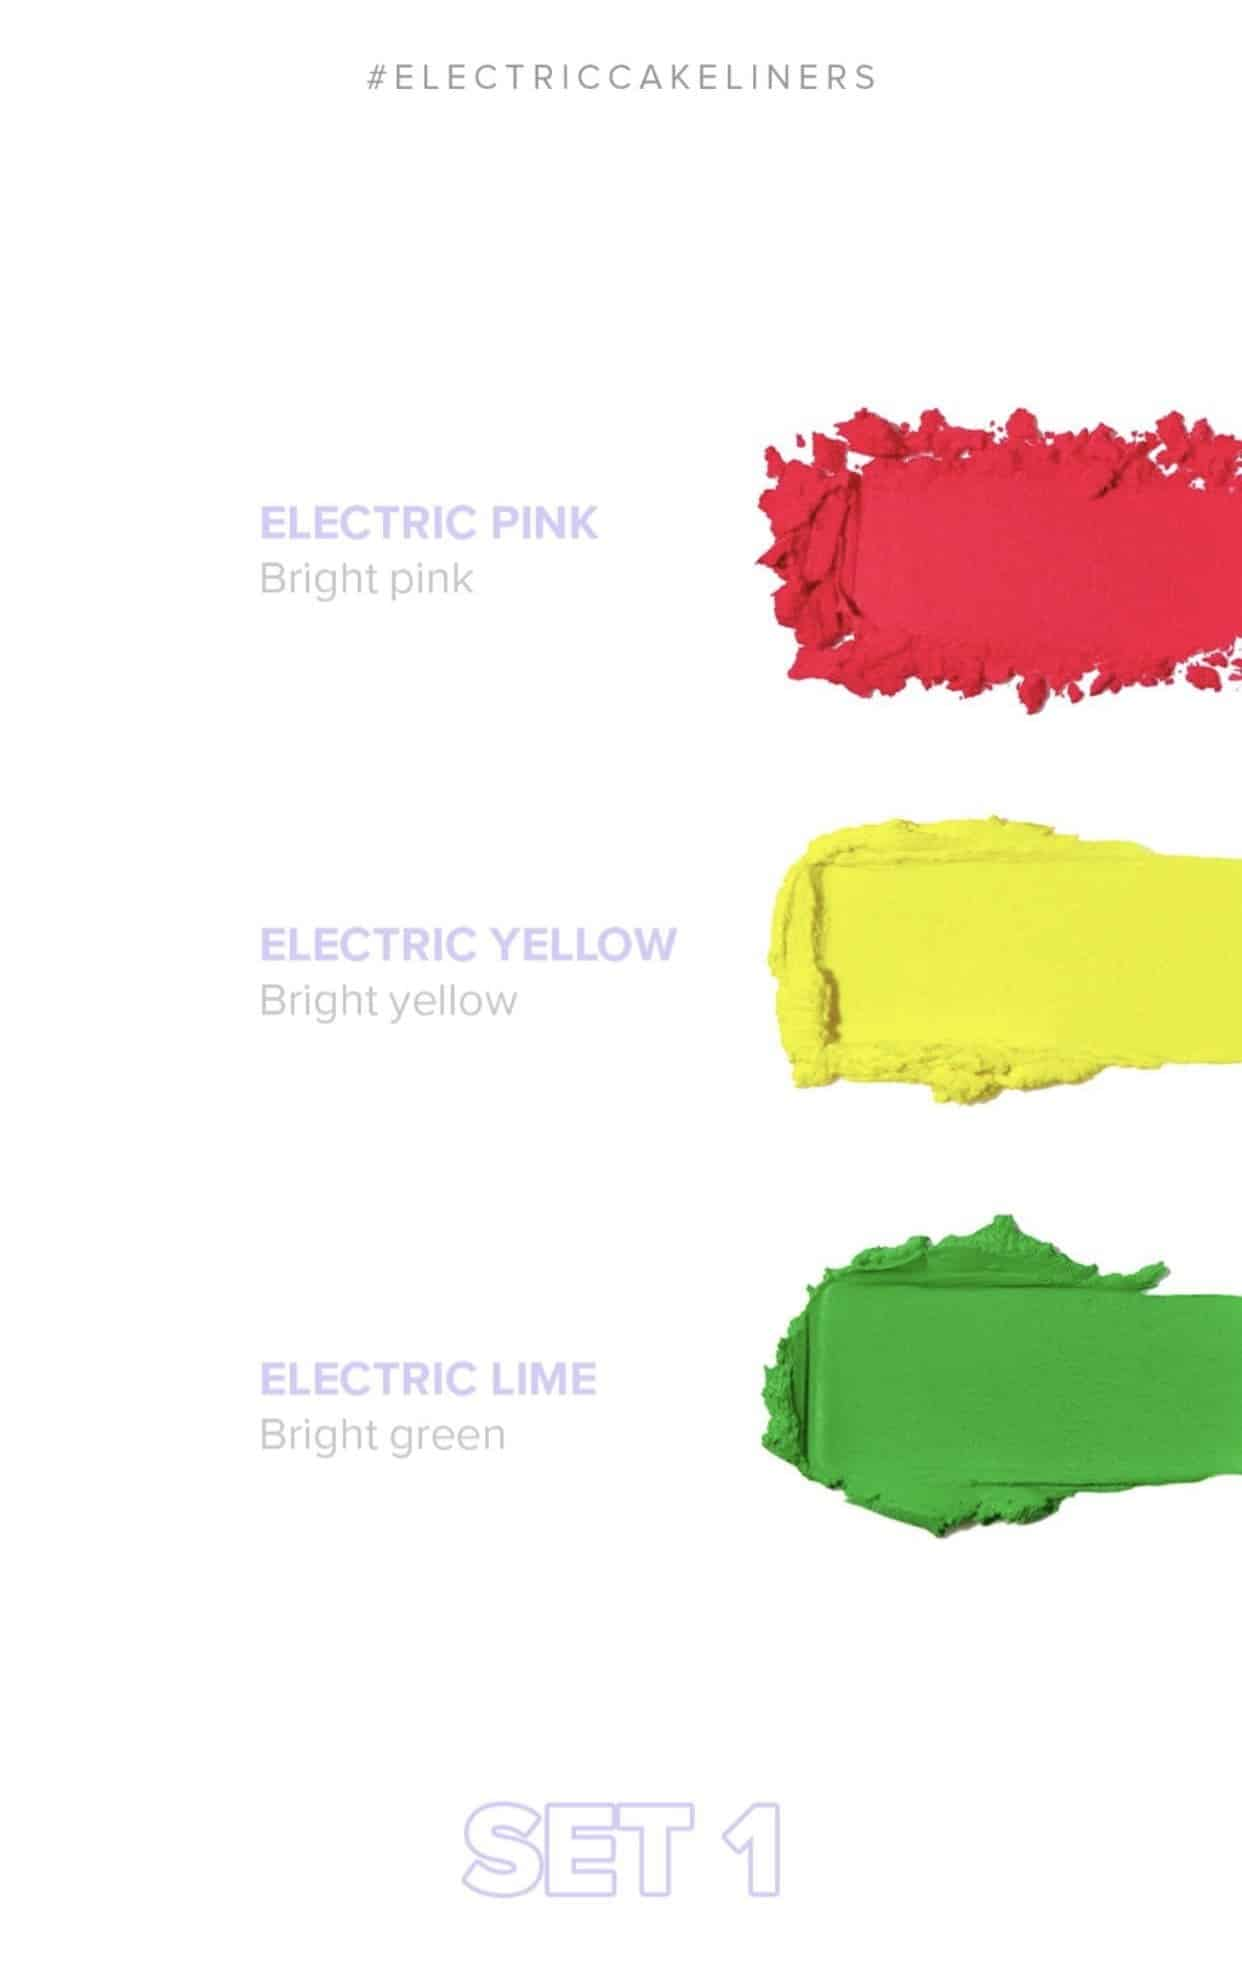 Anastasia Beverly Hills Norvina Electric Cake Liners - Electric & Neon